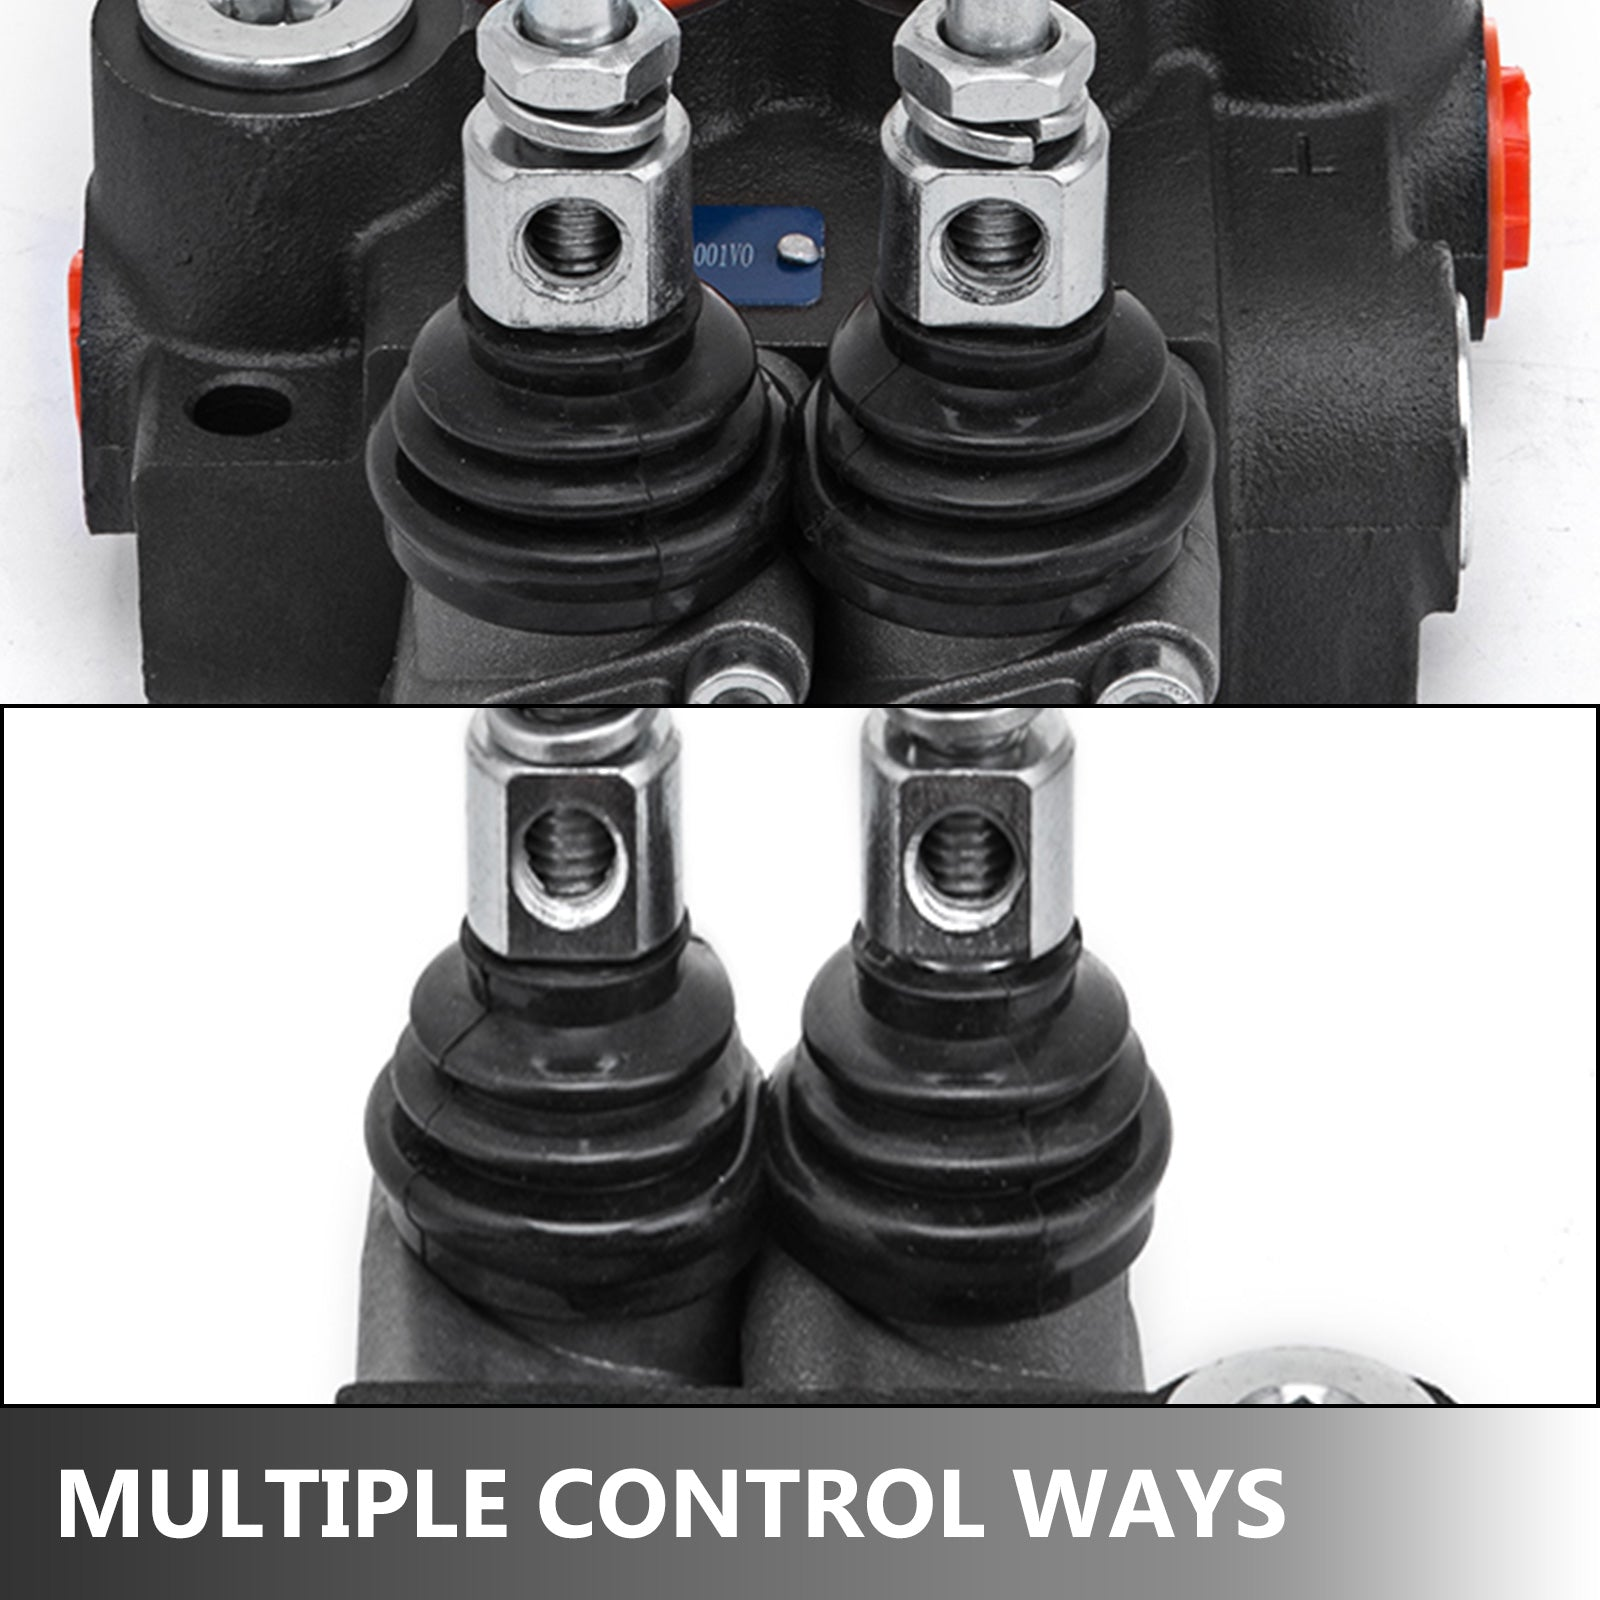 2 Spool Hydraulic Directional Control Valve 11 Gpm 4300psi Small Tractors Motors